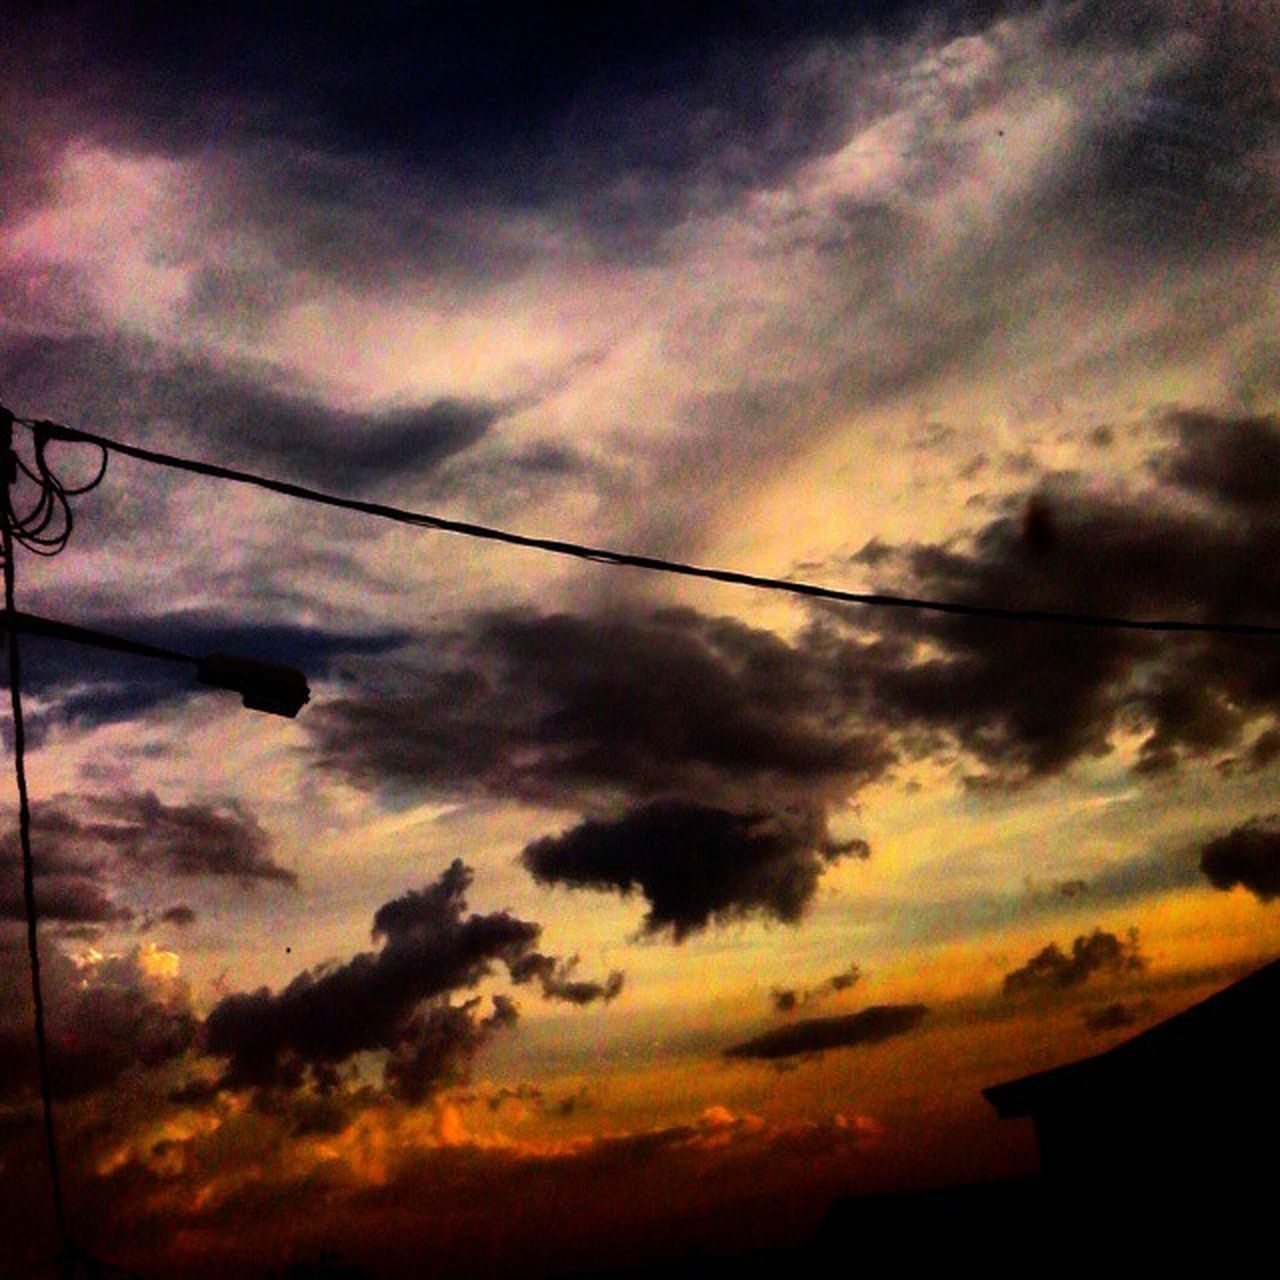 sunset, sky, silhouette, cloud - sky, dramatic sky, nature, low angle view, no people, beauty in nature, outdoors, scenics, yellow, day